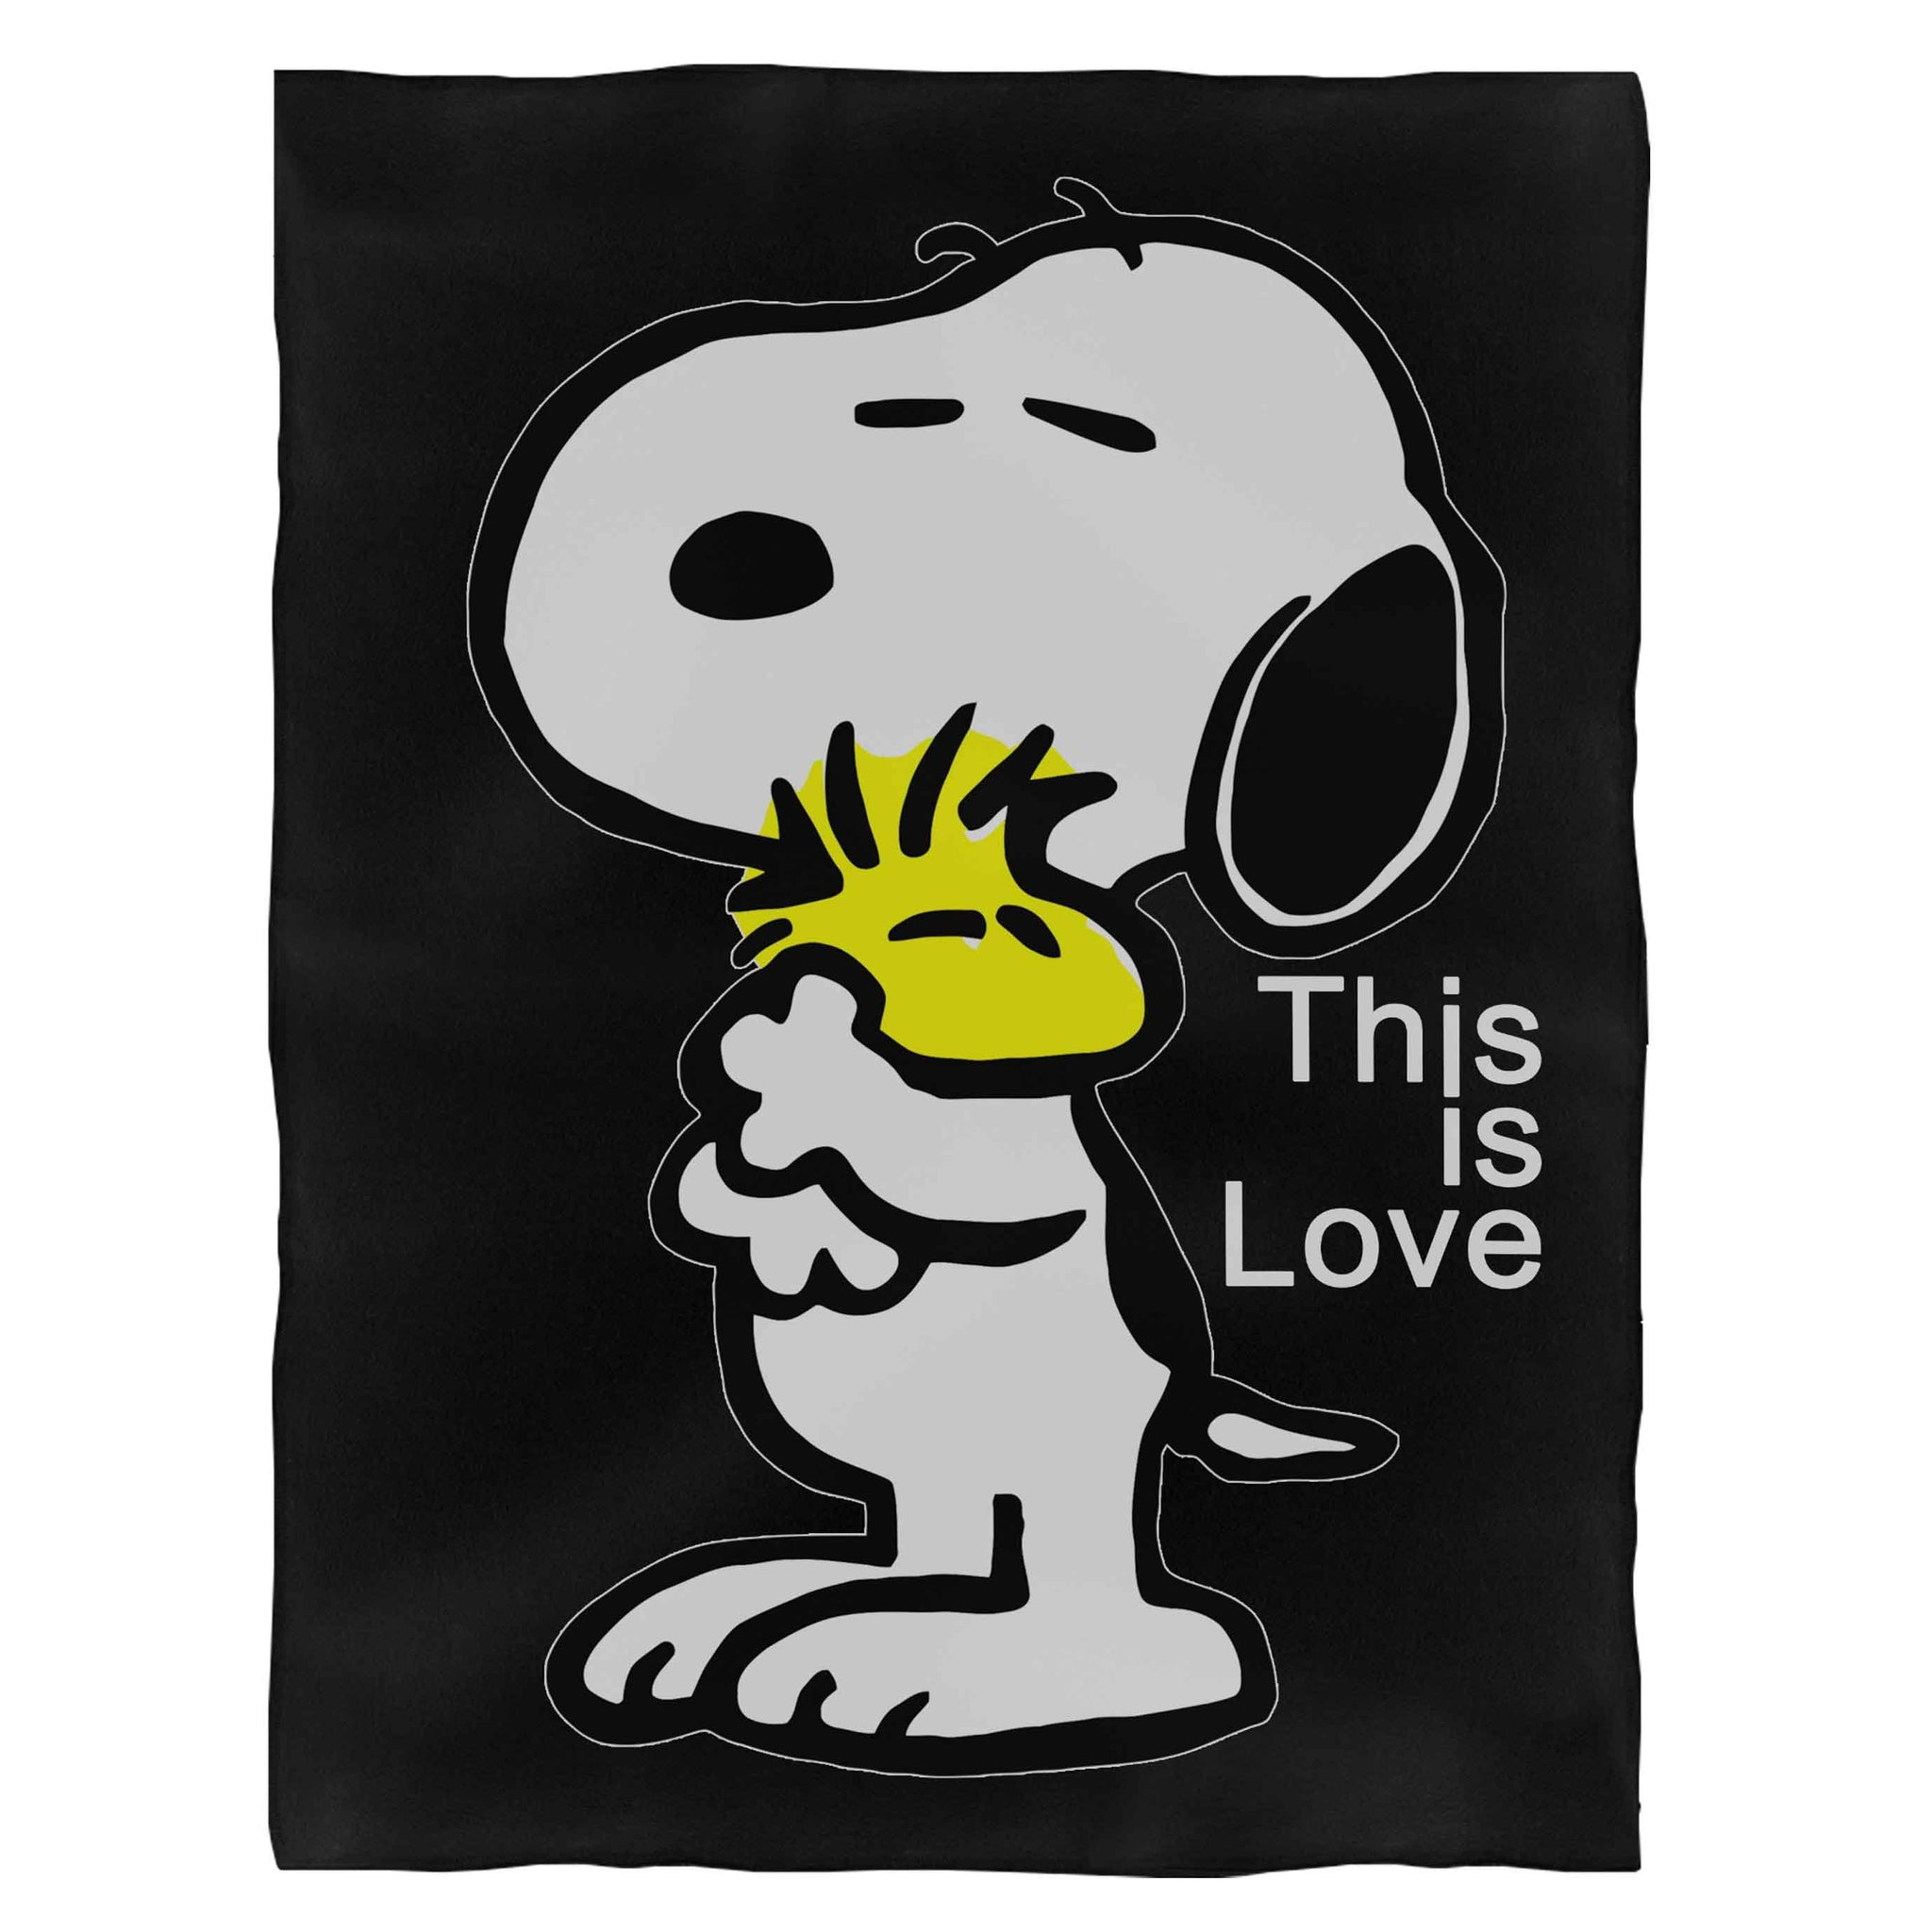 The Peanut Gang Snoopy And Woodstock This Is Love Fleece Blanket